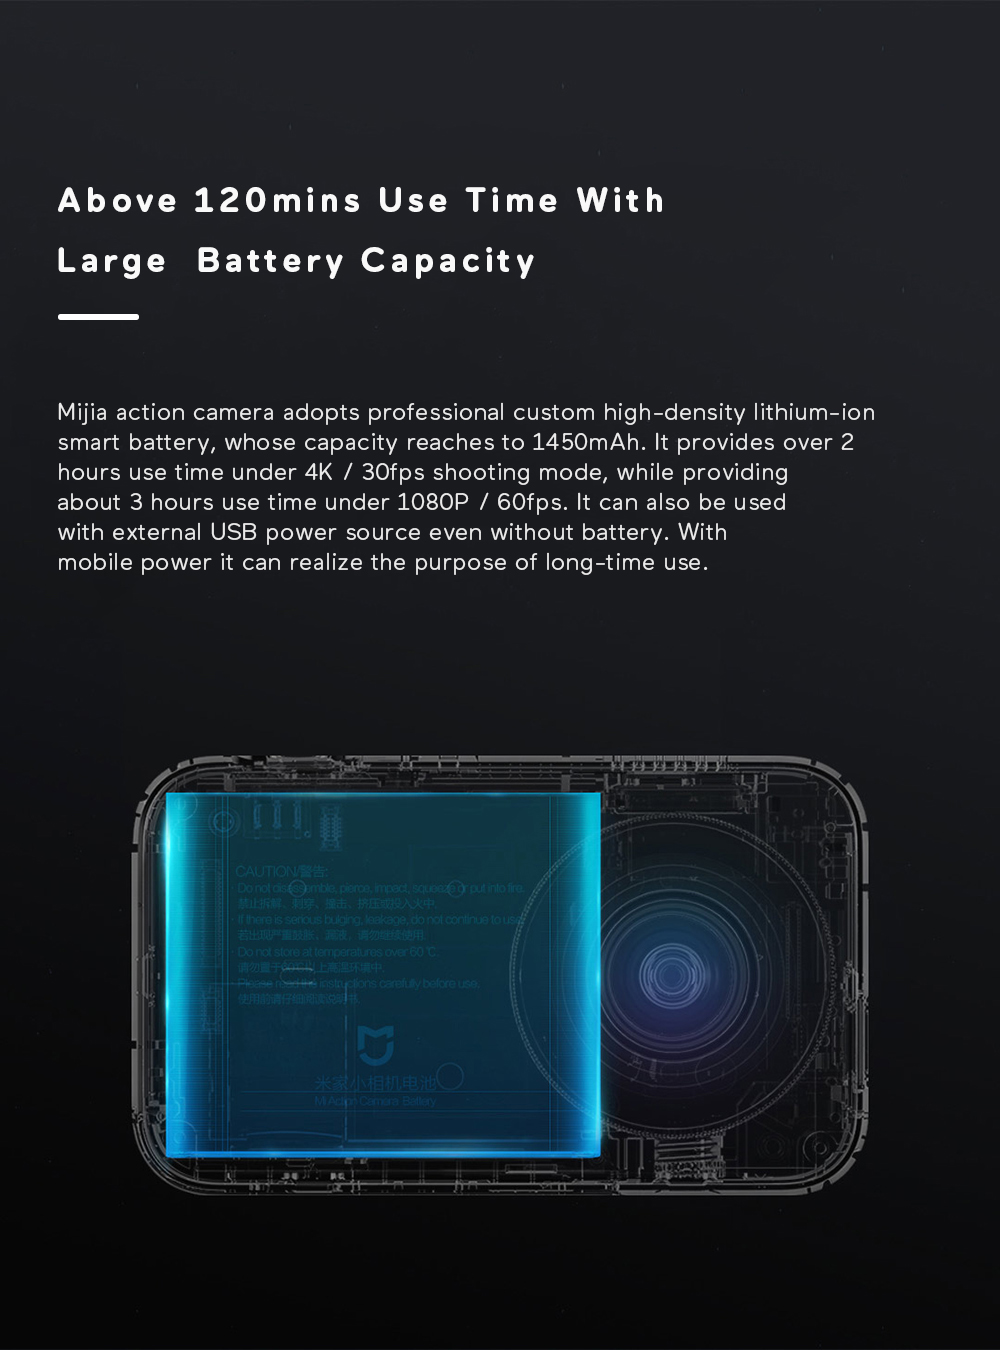 Xiaomi Mijia 4K Ambarella A12S75 Sony IMX317 2,4 - crna - image Xiaomi-Camera-Mijia-4K-Action-Camera-20170824175030872 on https://smartmall.hr